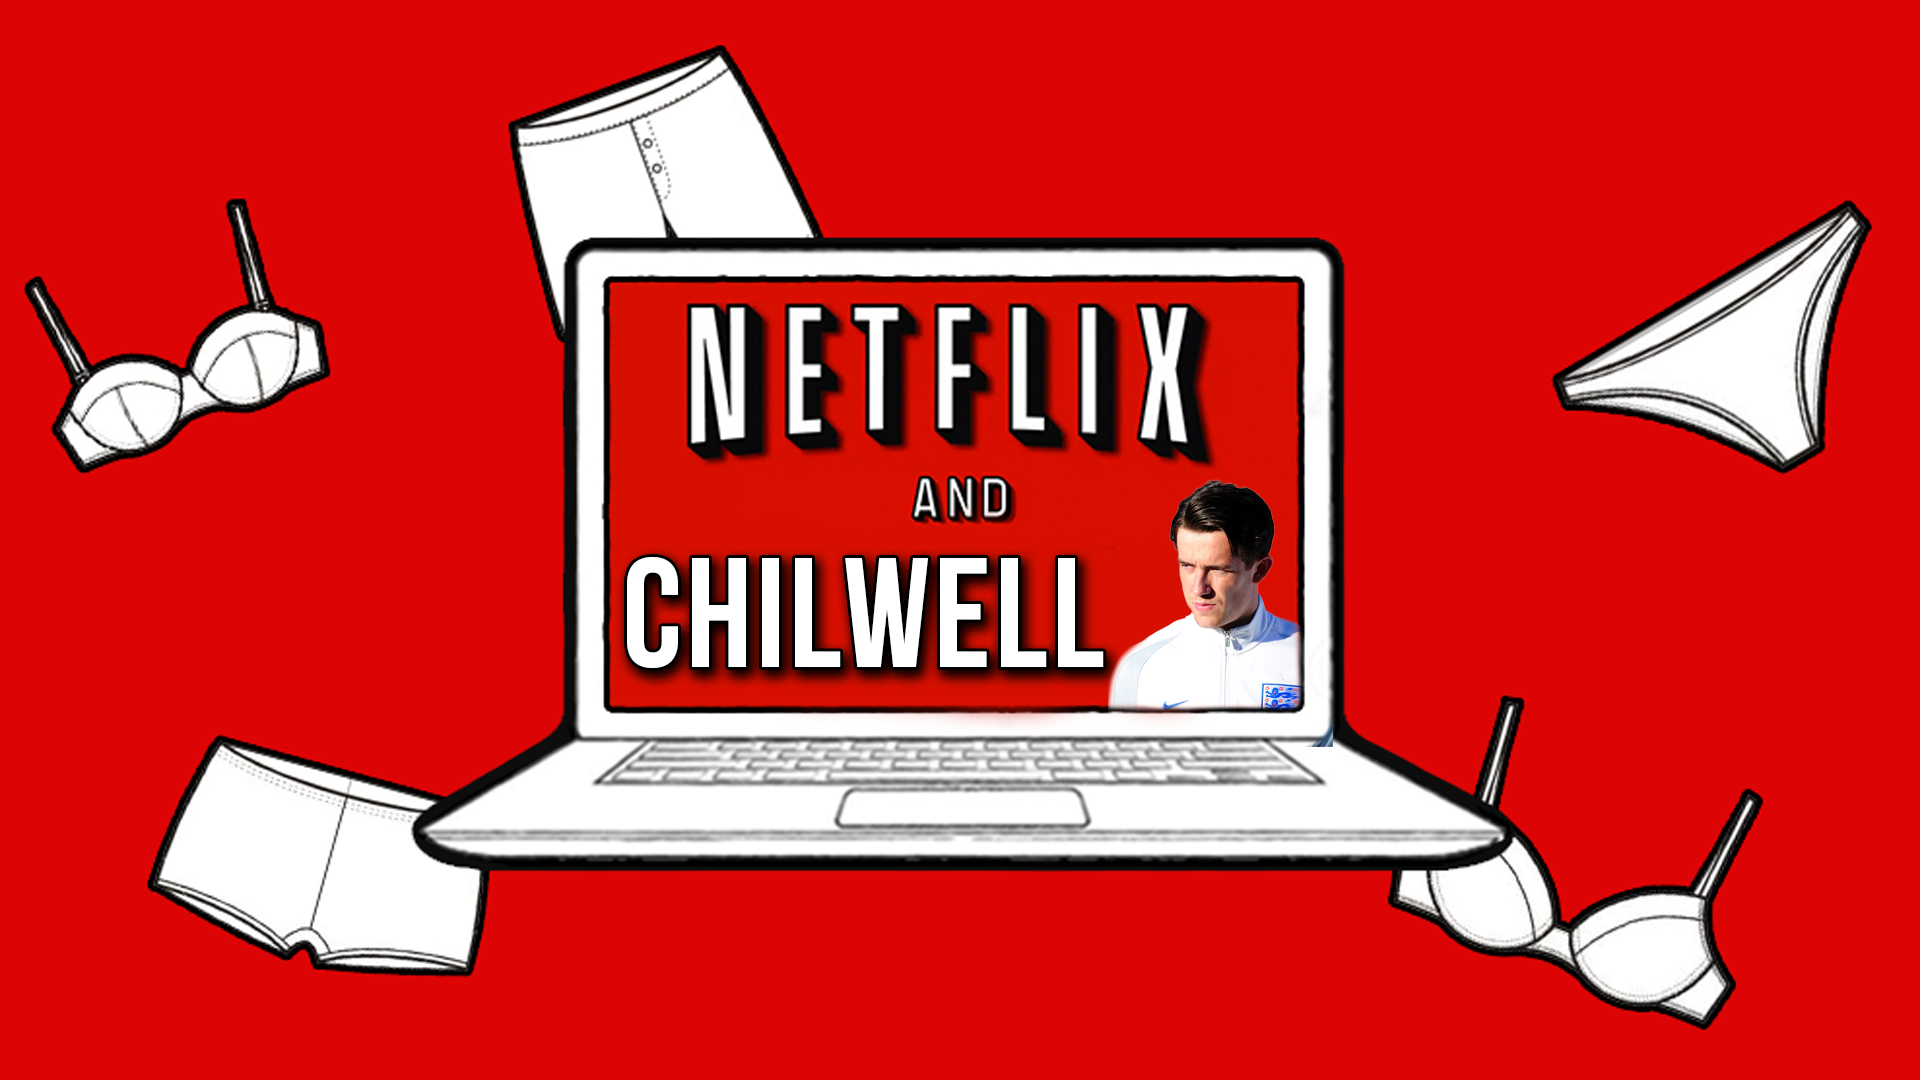 Netflix and Chilwell